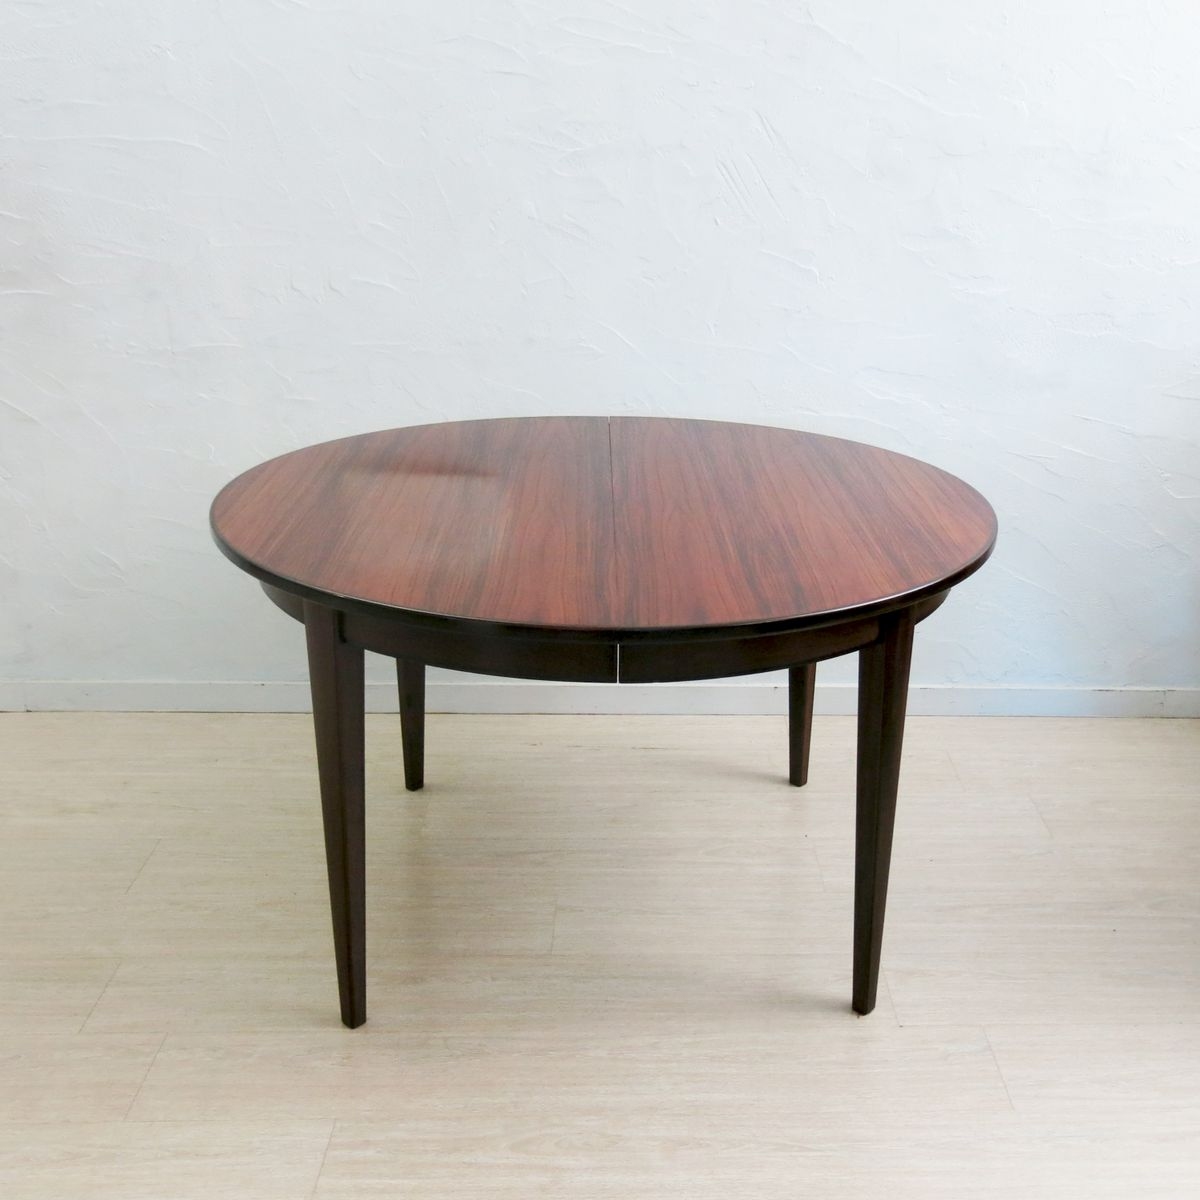 Model 55 Rosewood Dining Table from Omann Junn for sale at  : model 55 rosewood dining table from omann junn 1 from pamono.com size 1200 x 1200 jpeg 71kB